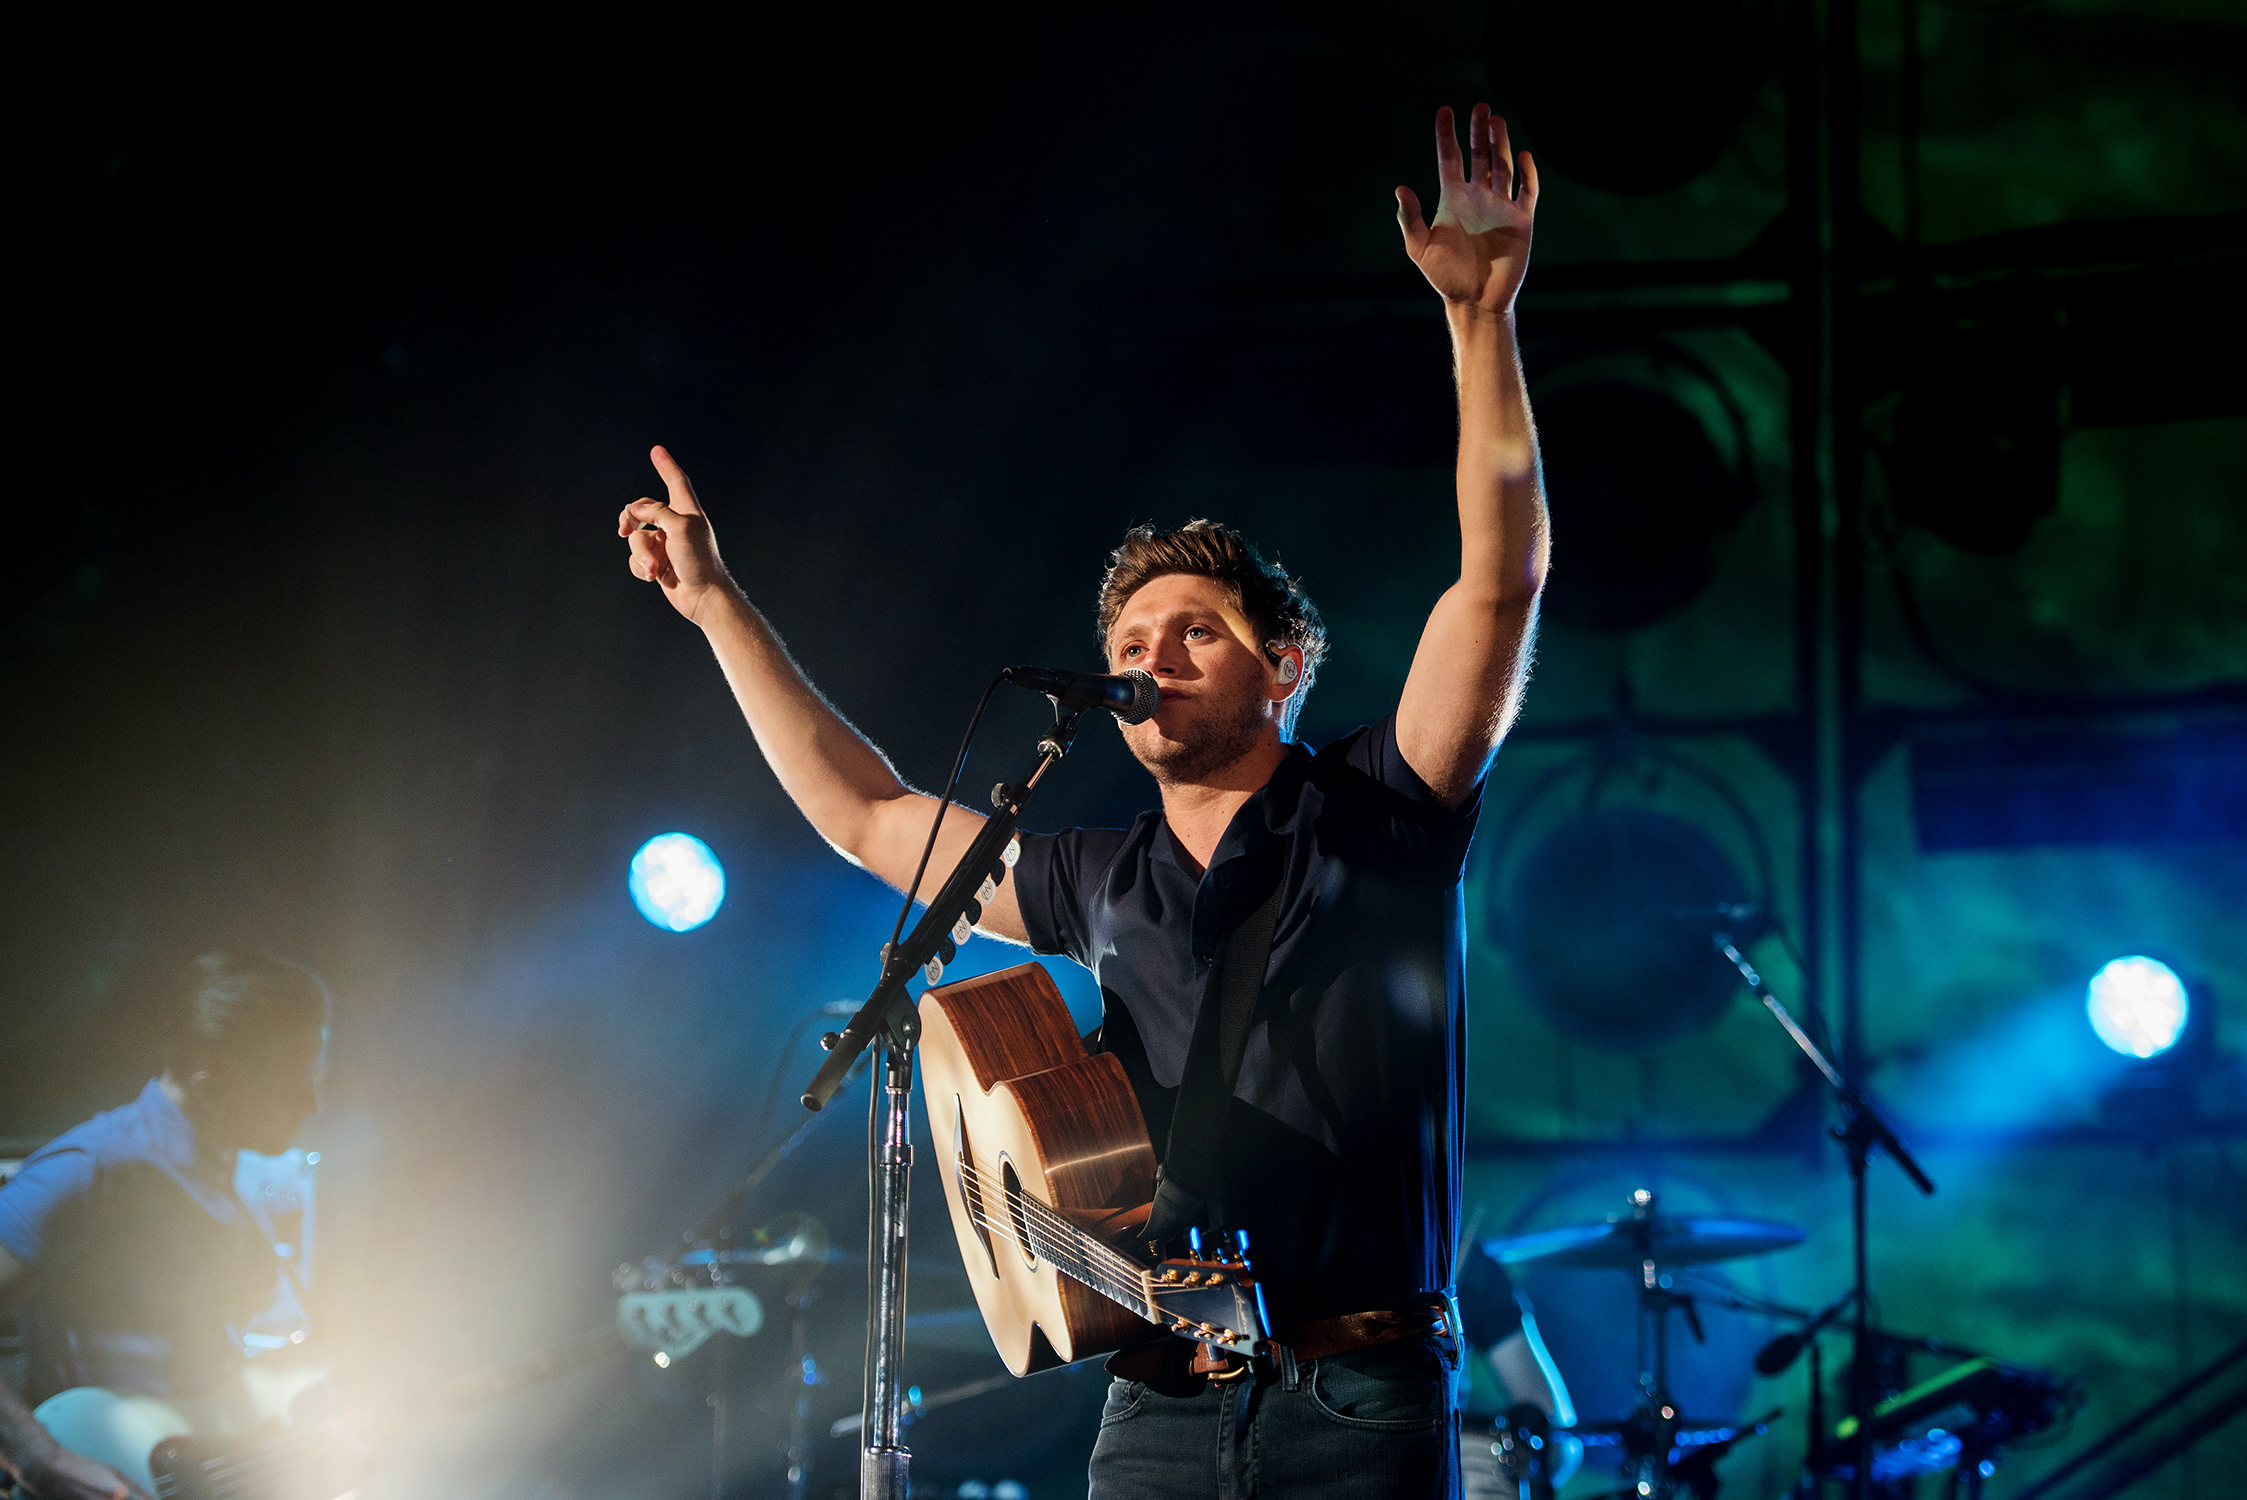 NiallHoranRedRocks8202018 (16 of 32).jpg